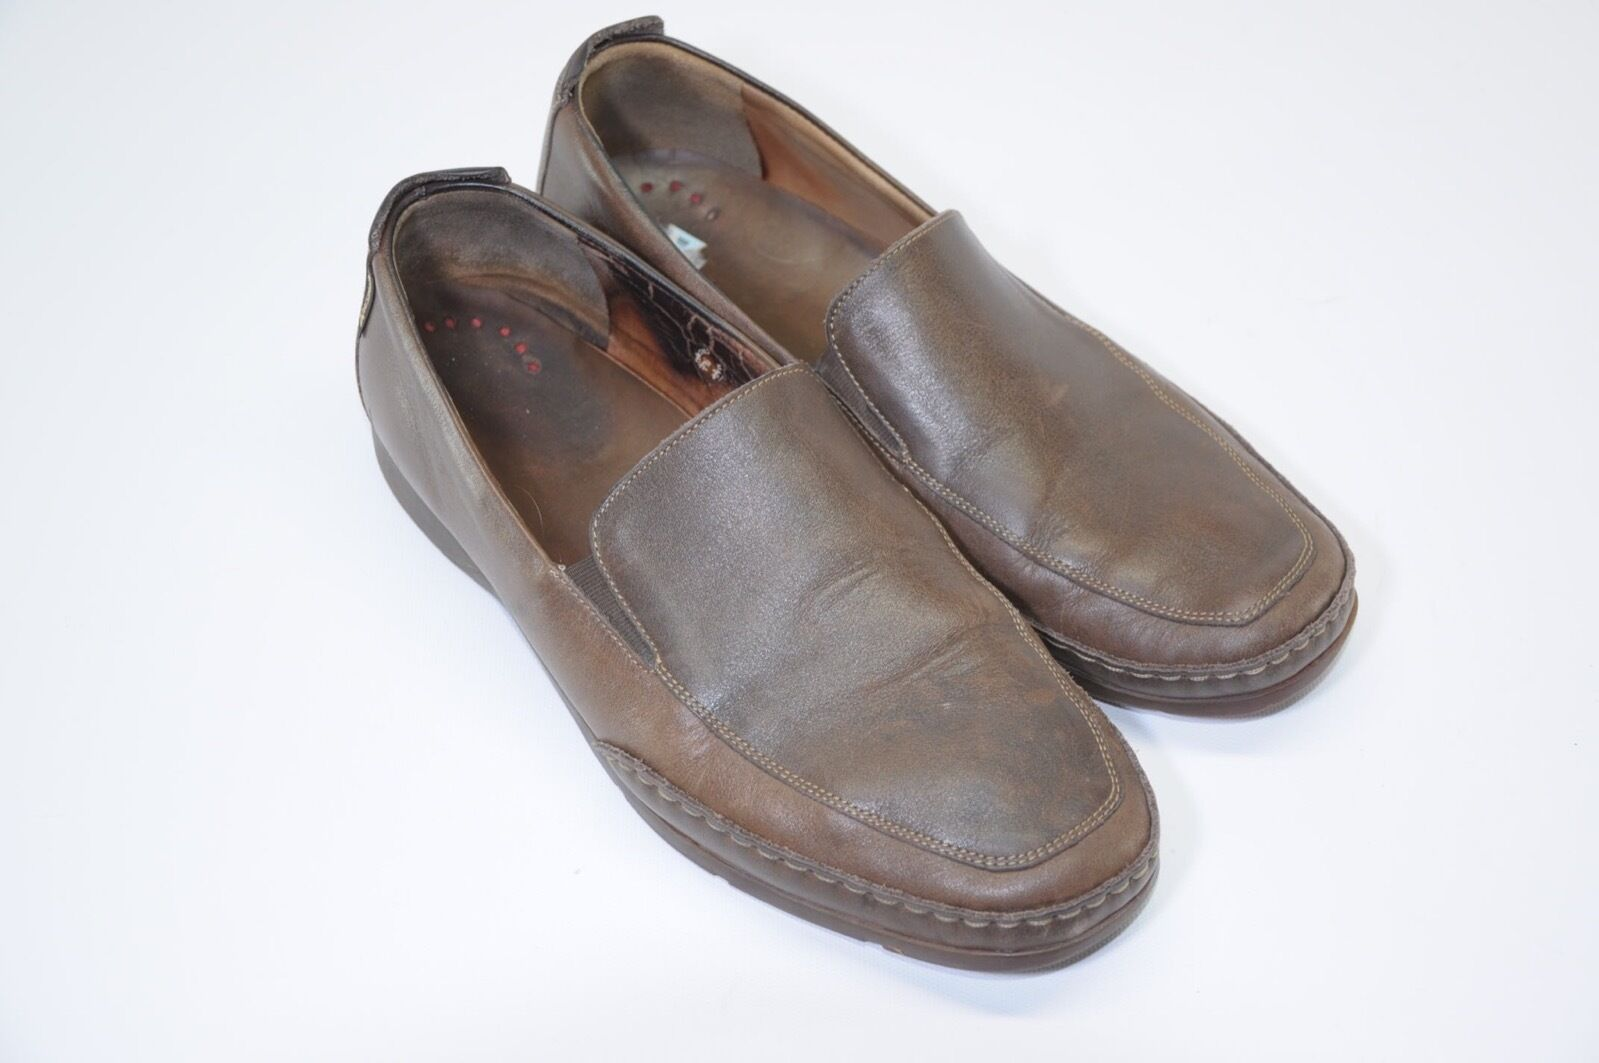 MEPHISTO Cool Air Soft Latex Technology Brown Pelle Uomo's Slip On Loafers 9.5